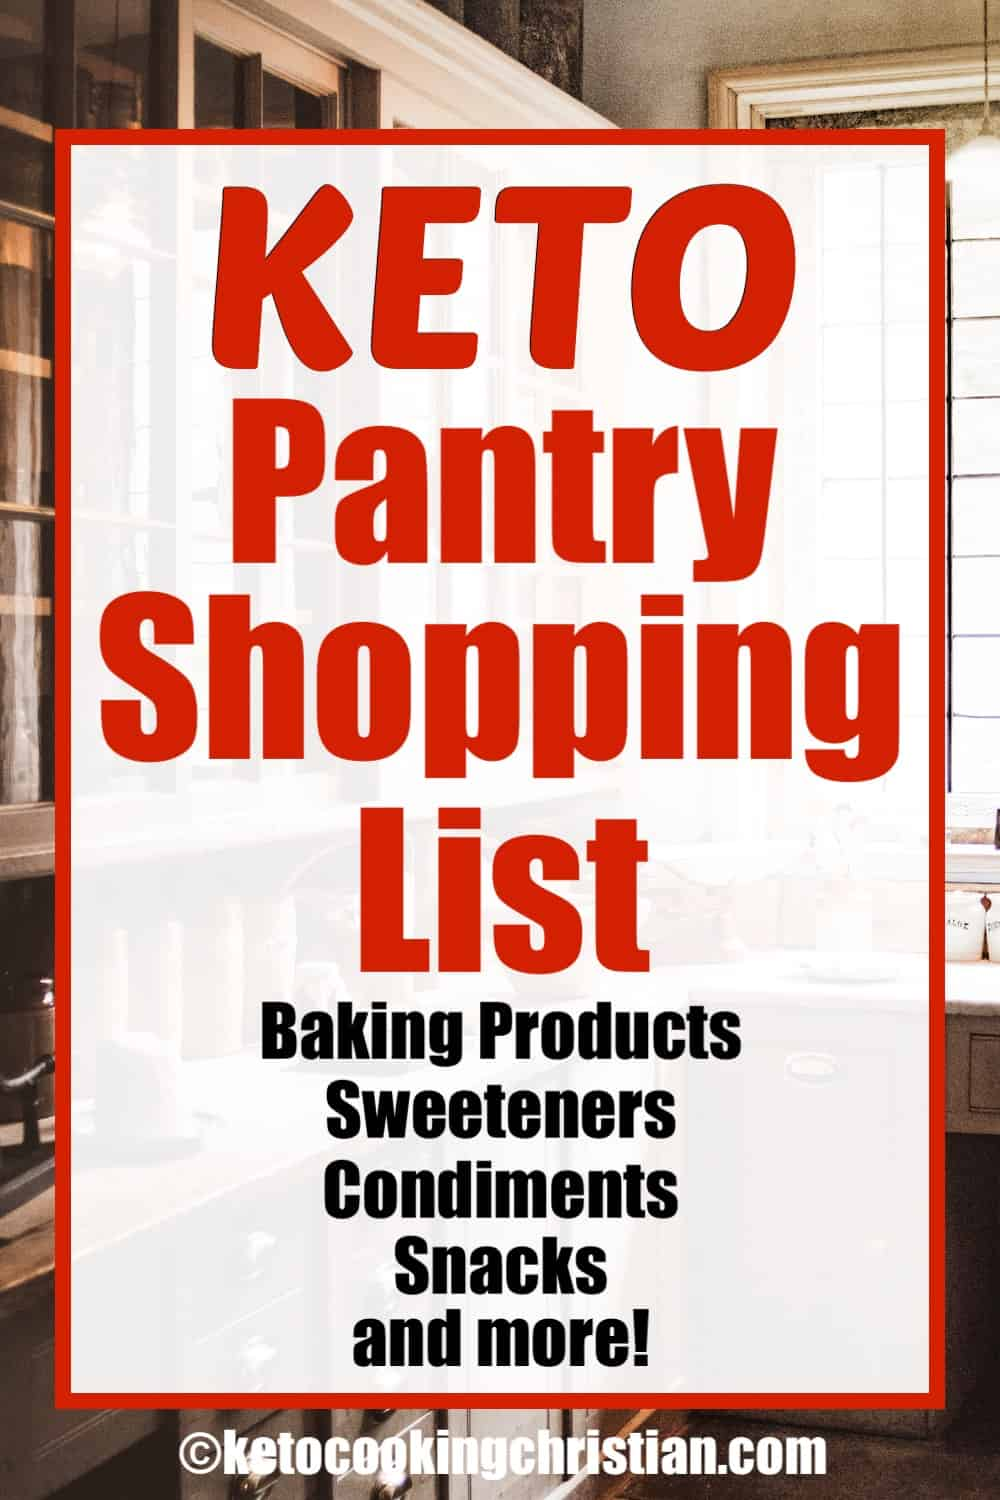 Keto Pantry Shopping List text